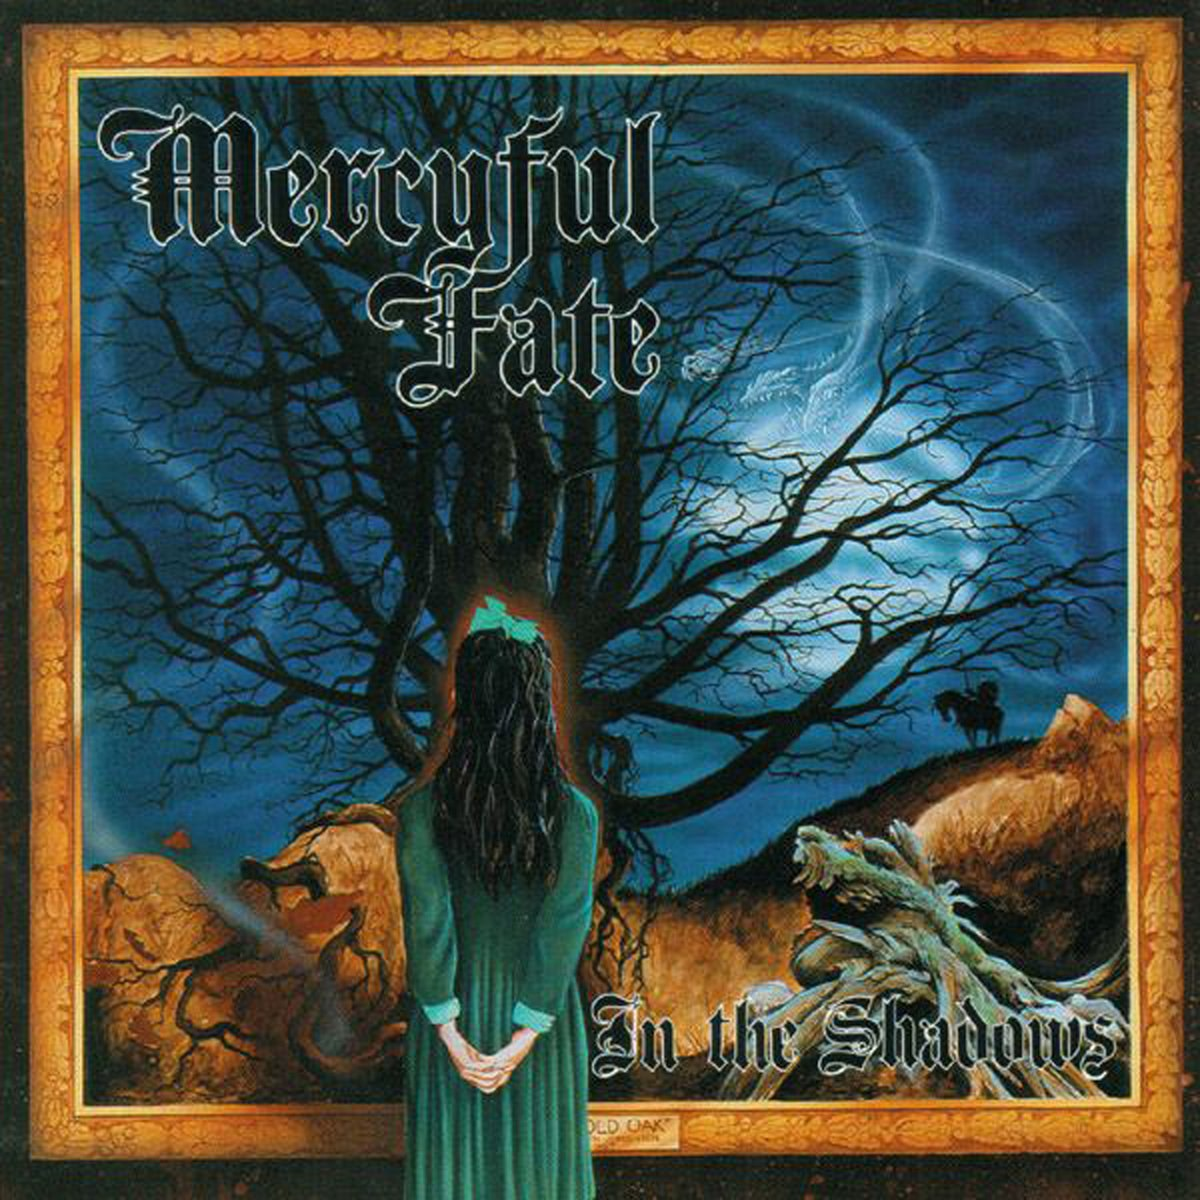 Review for Mercyful Fate - In the Shadows